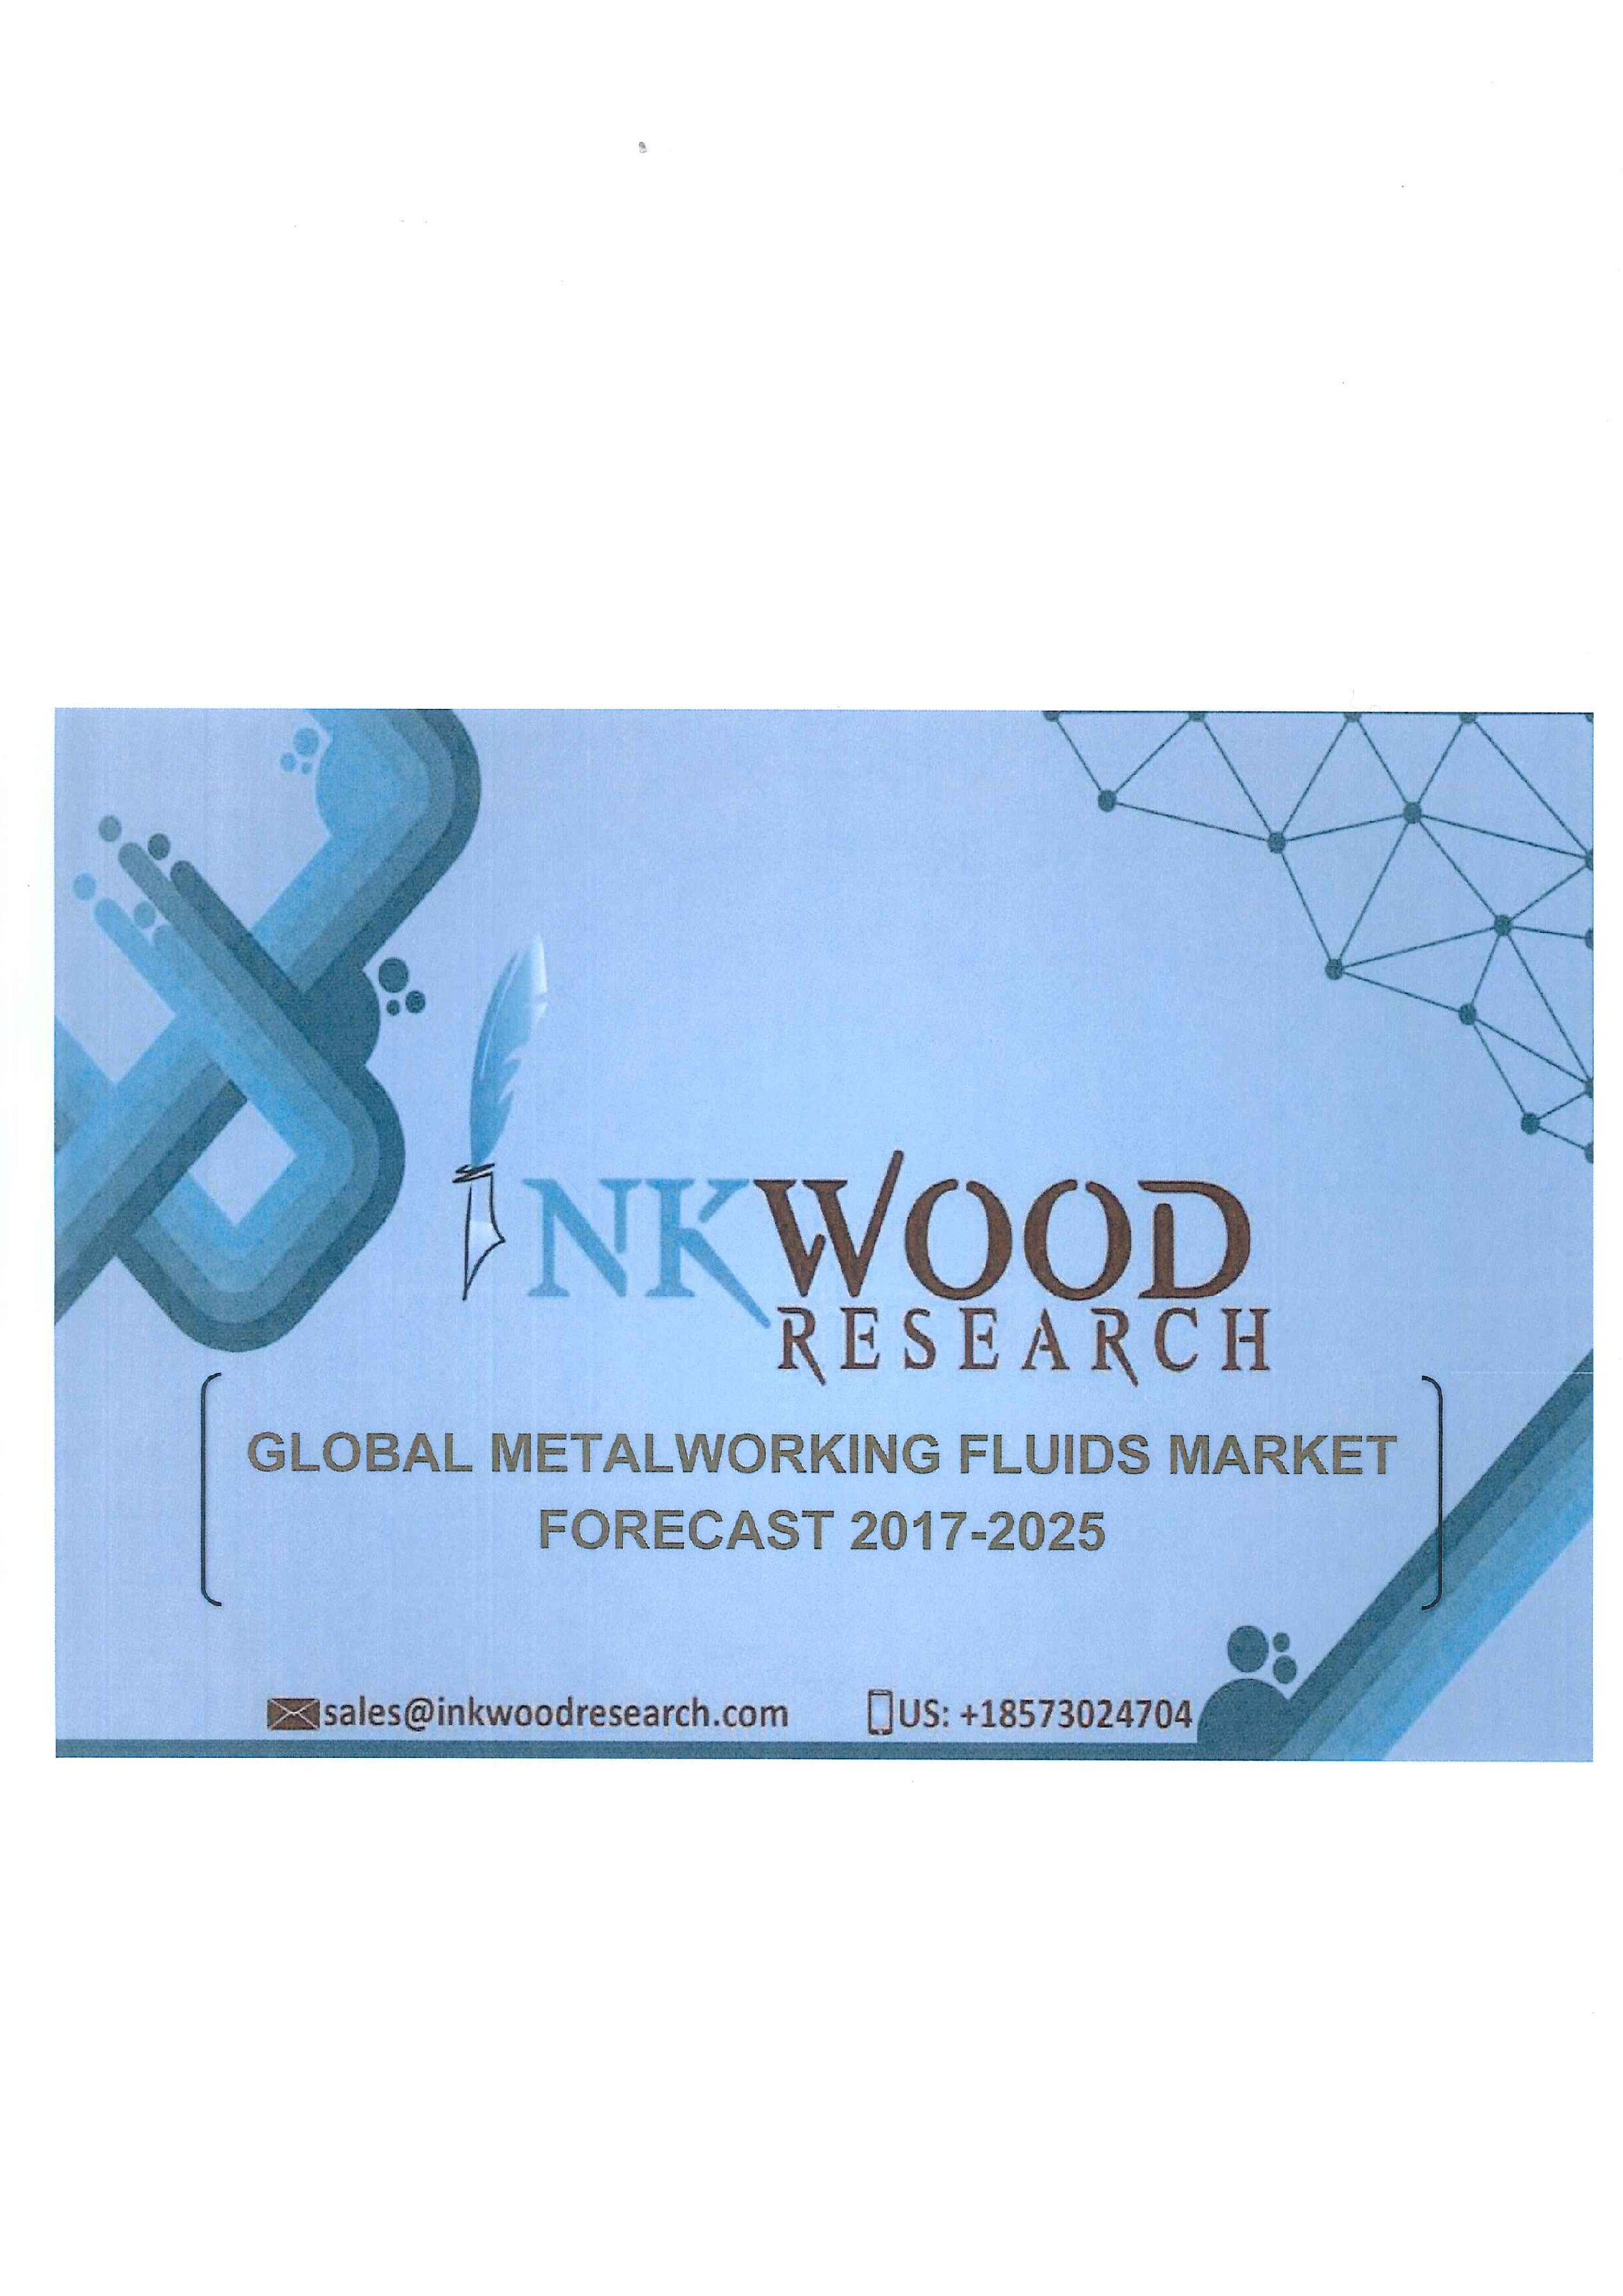 Global metalworking fluids market forecast 2017-2025 [ebook]